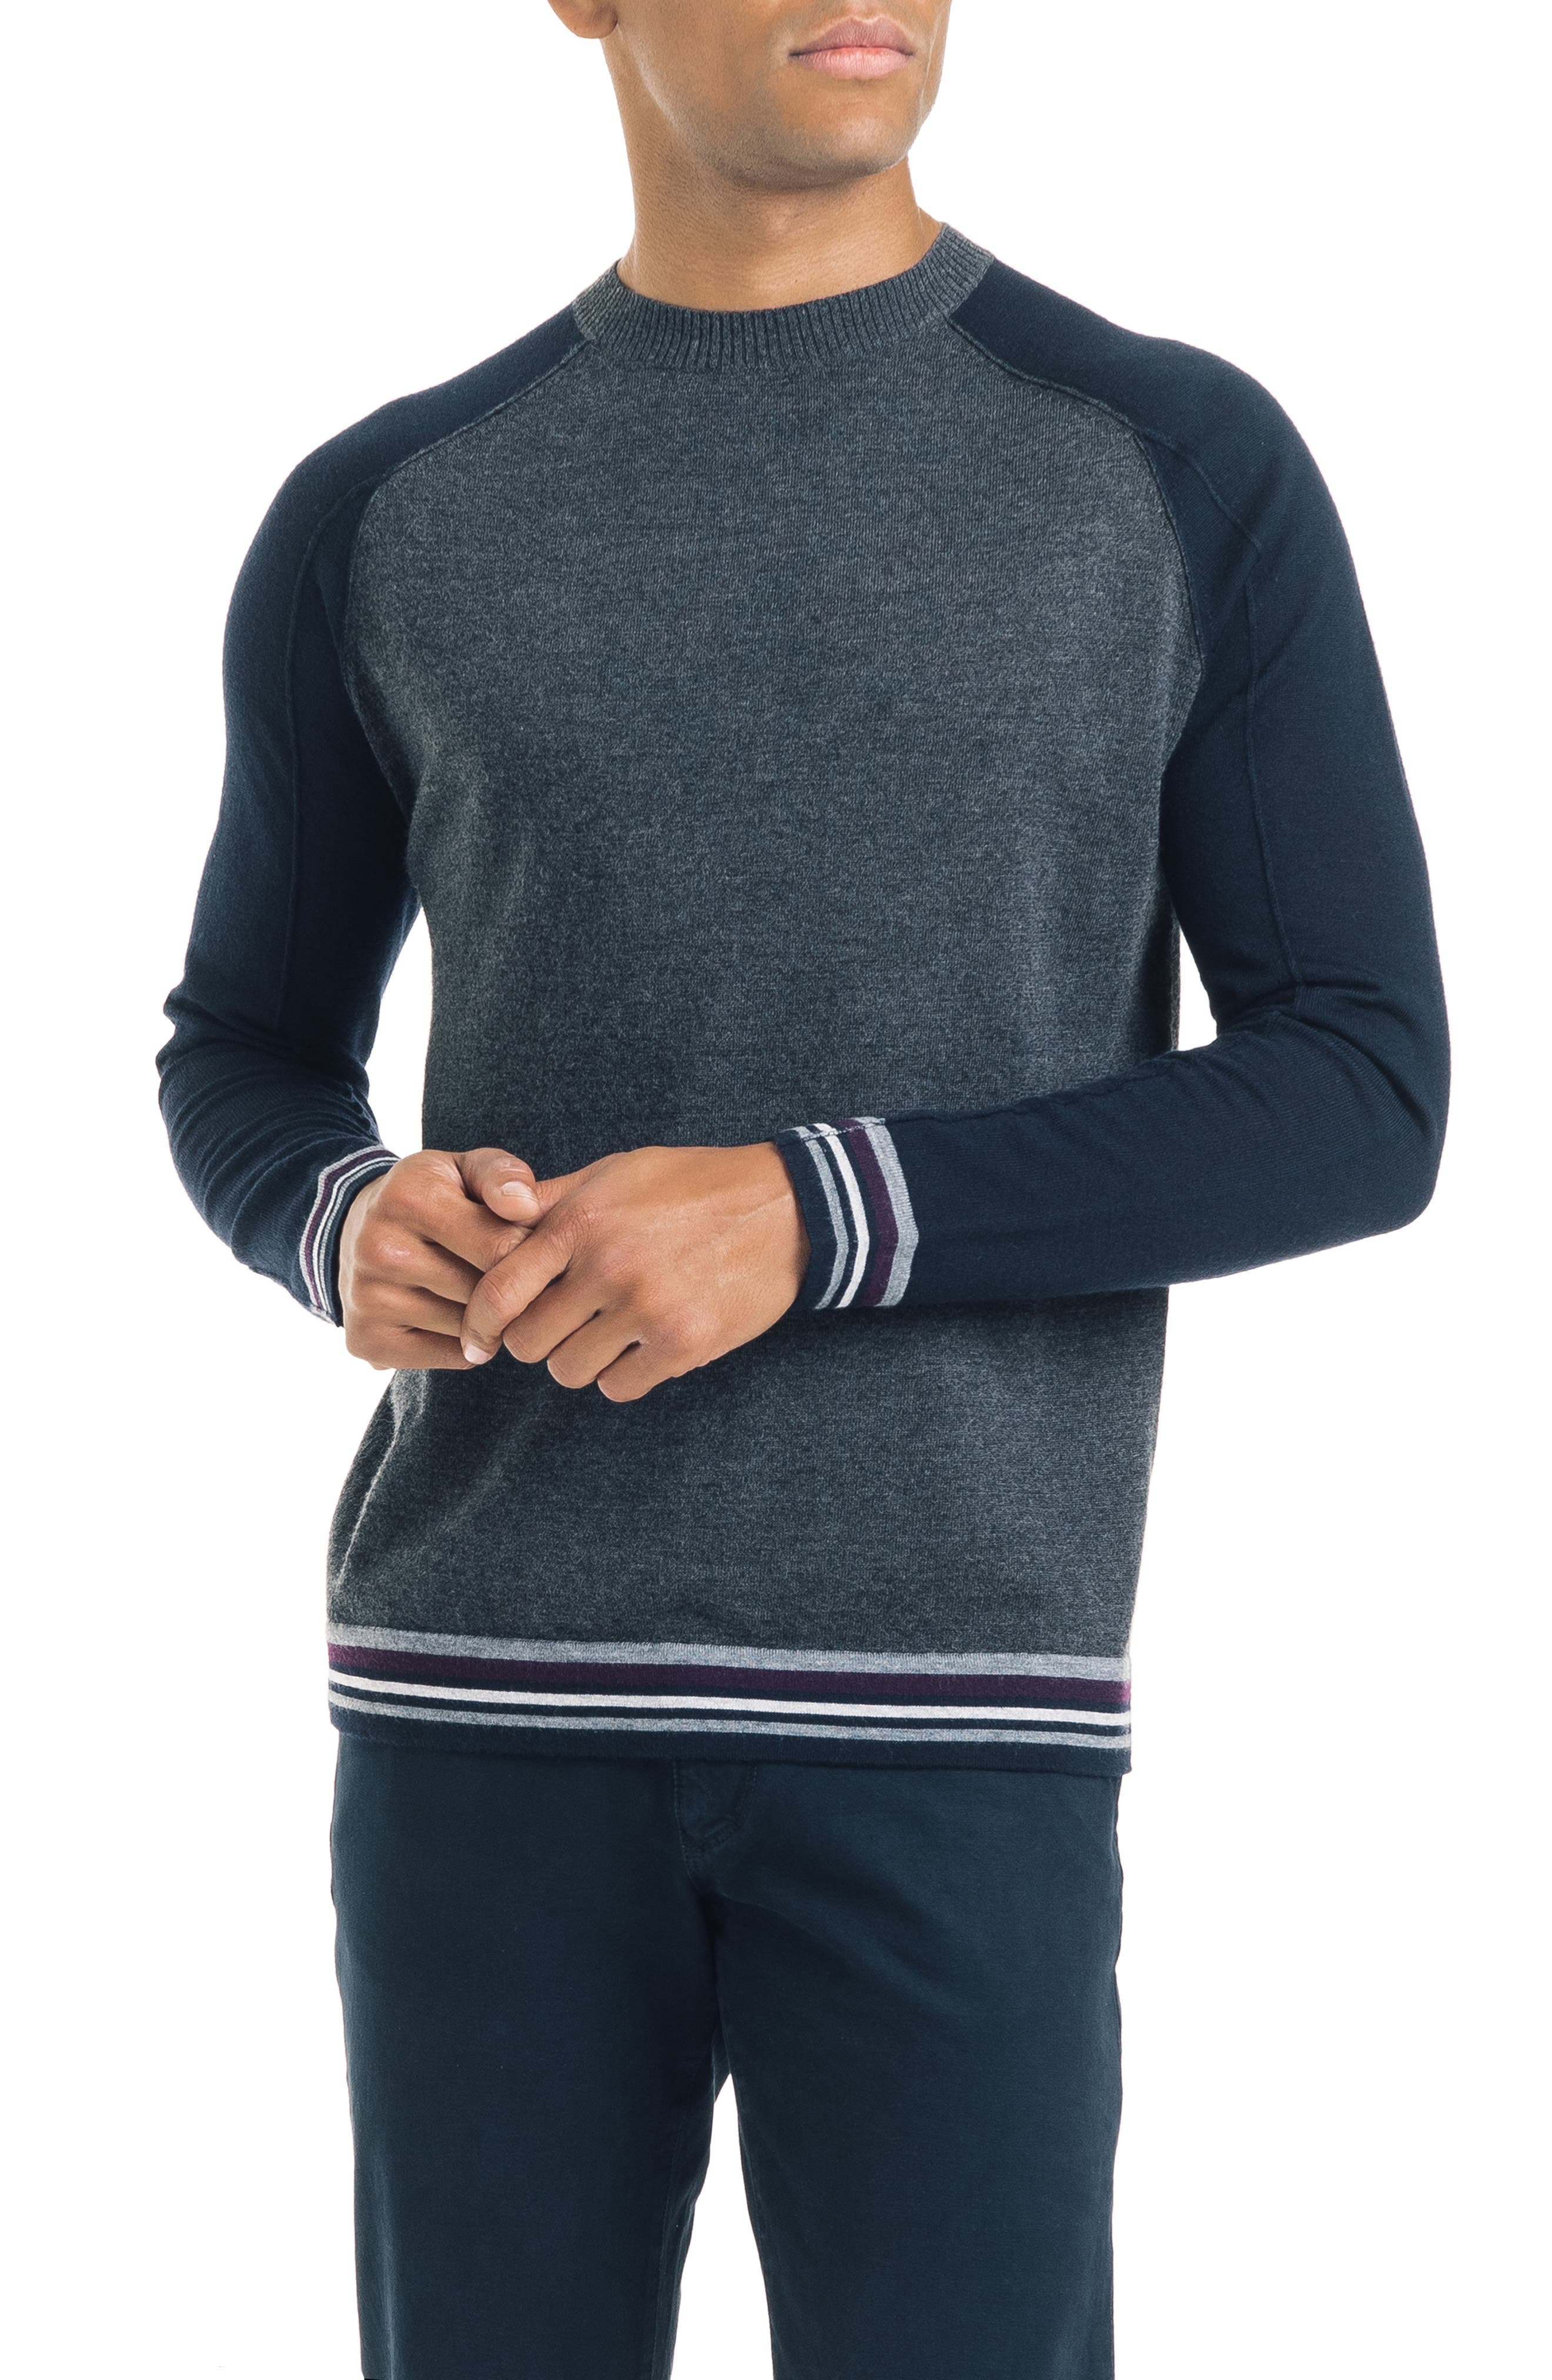 GOOD MAN BRAND Mix Modern Slim Fit Wool Sweater in Charcoal Heather